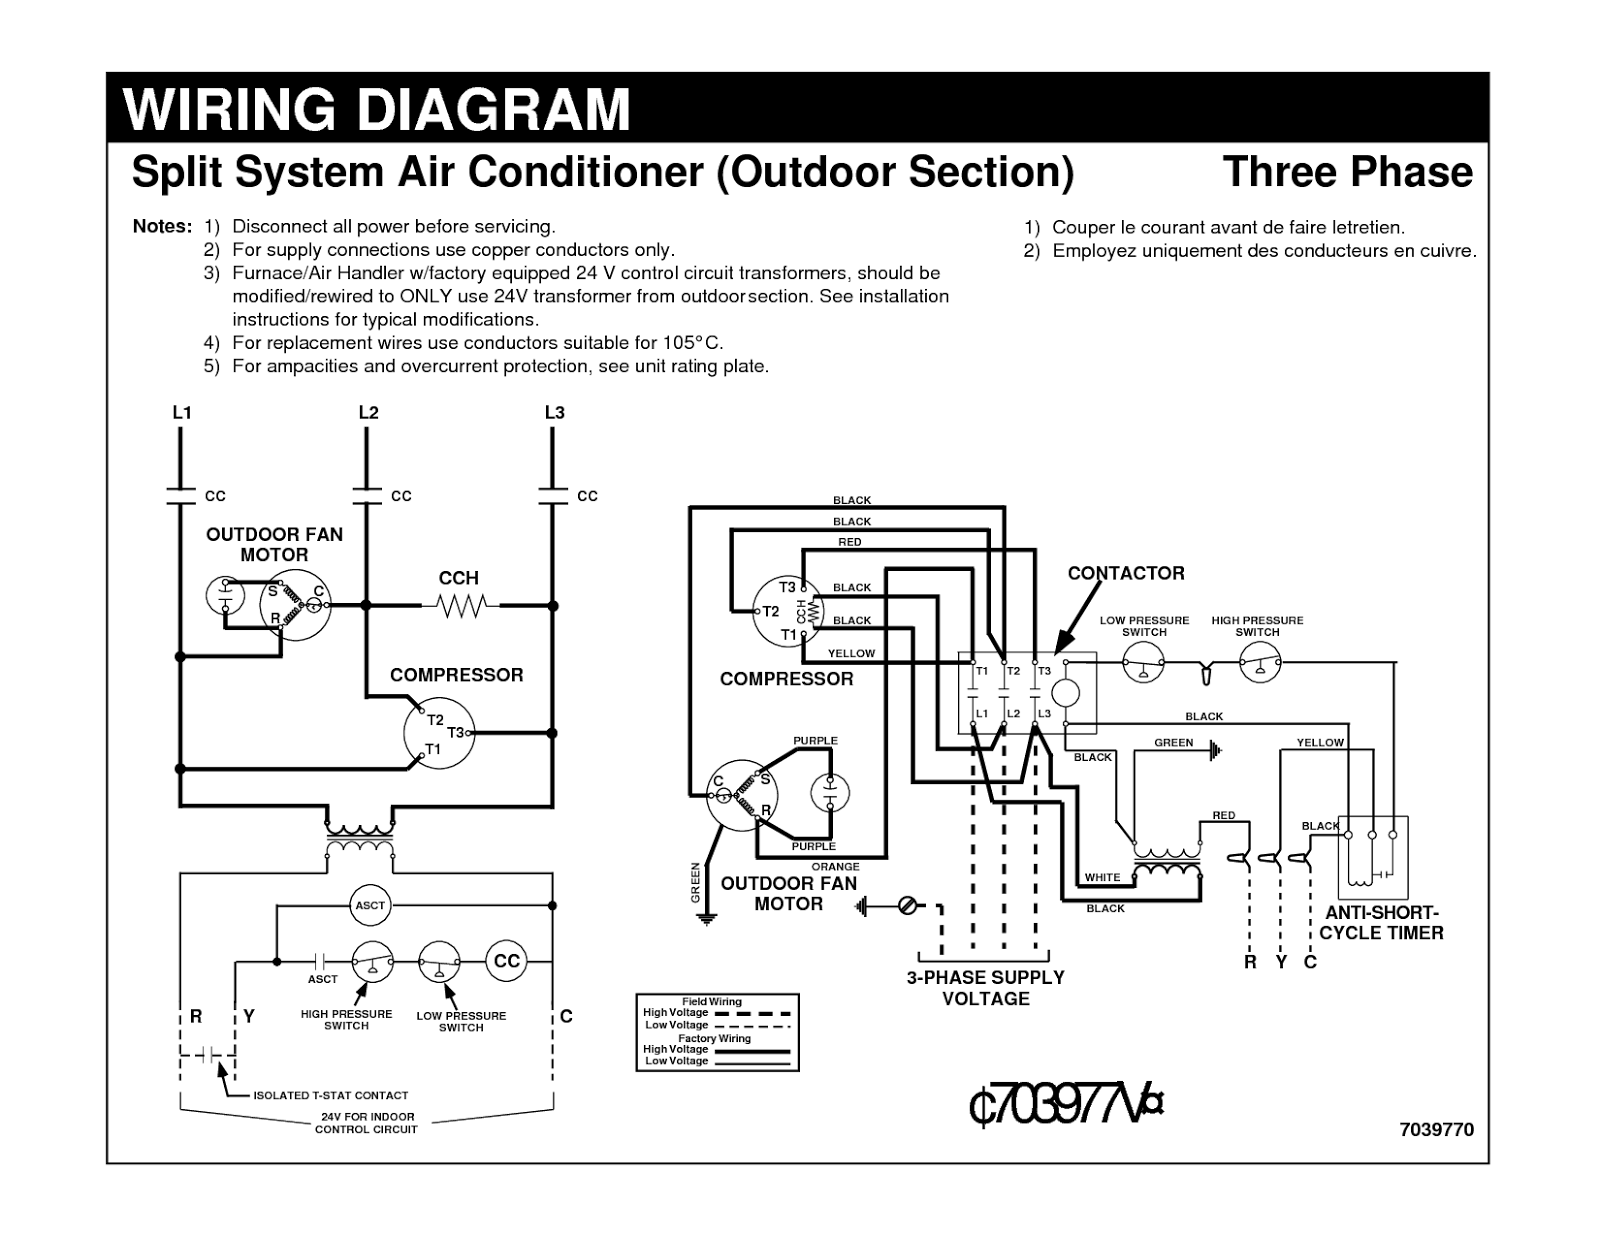 Ac Wiring Schematic Simple Diagram Diagrams For Motors Fan Motor